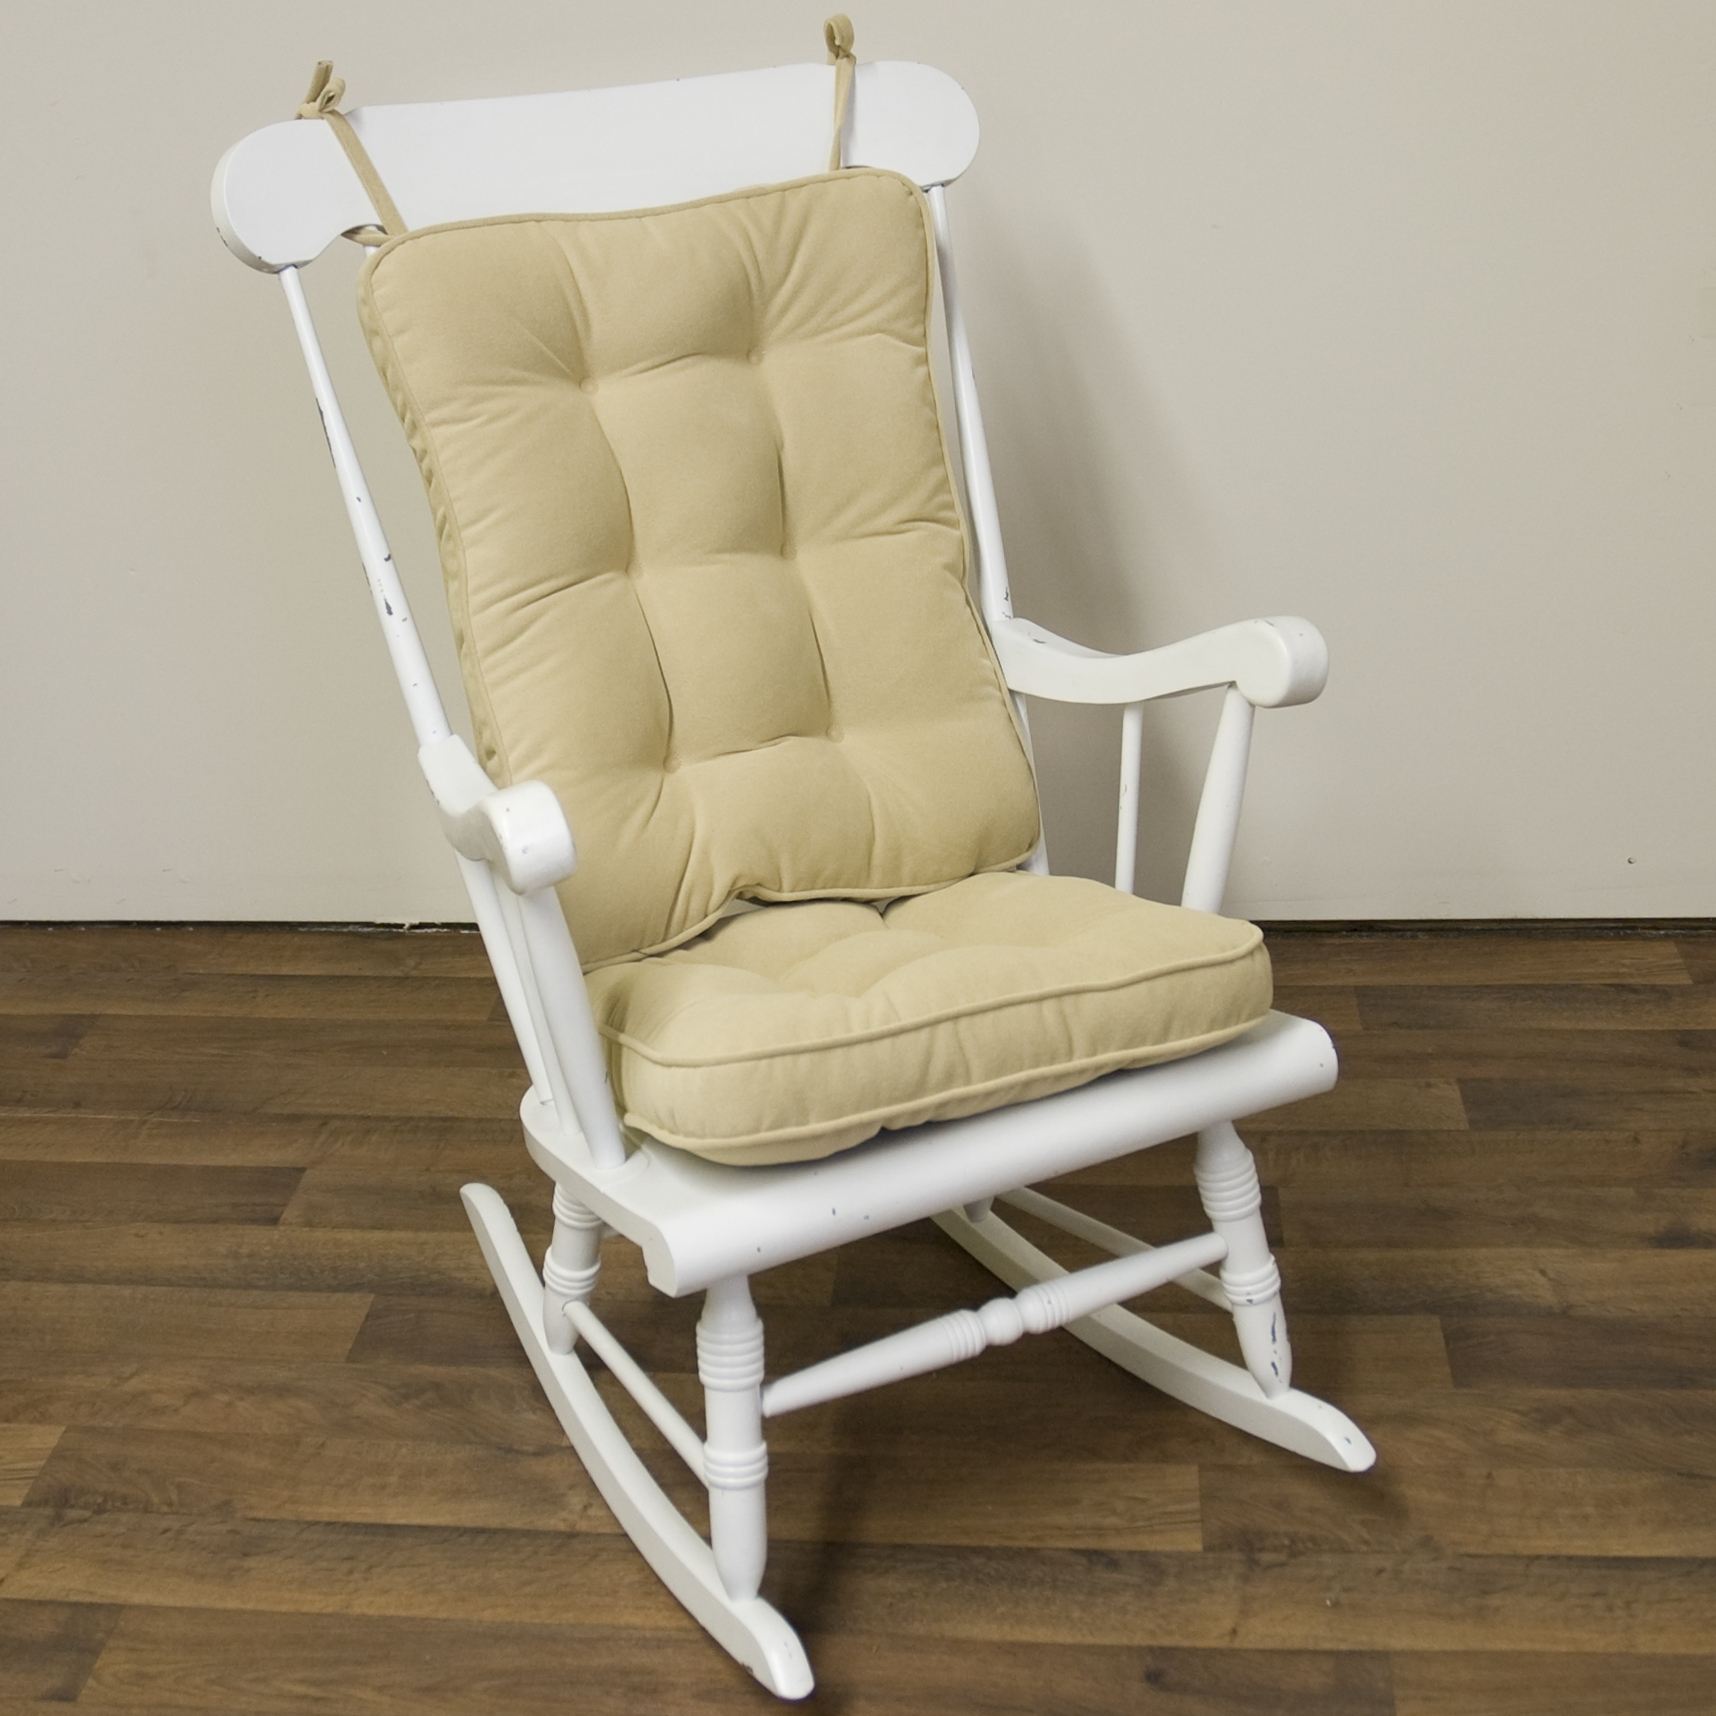 Lowes Rocking Chairs Within 2017 Livingroom : Lowes White Wooden Rocking Chairs Outdoor Wood Chair (View 7 of 15)